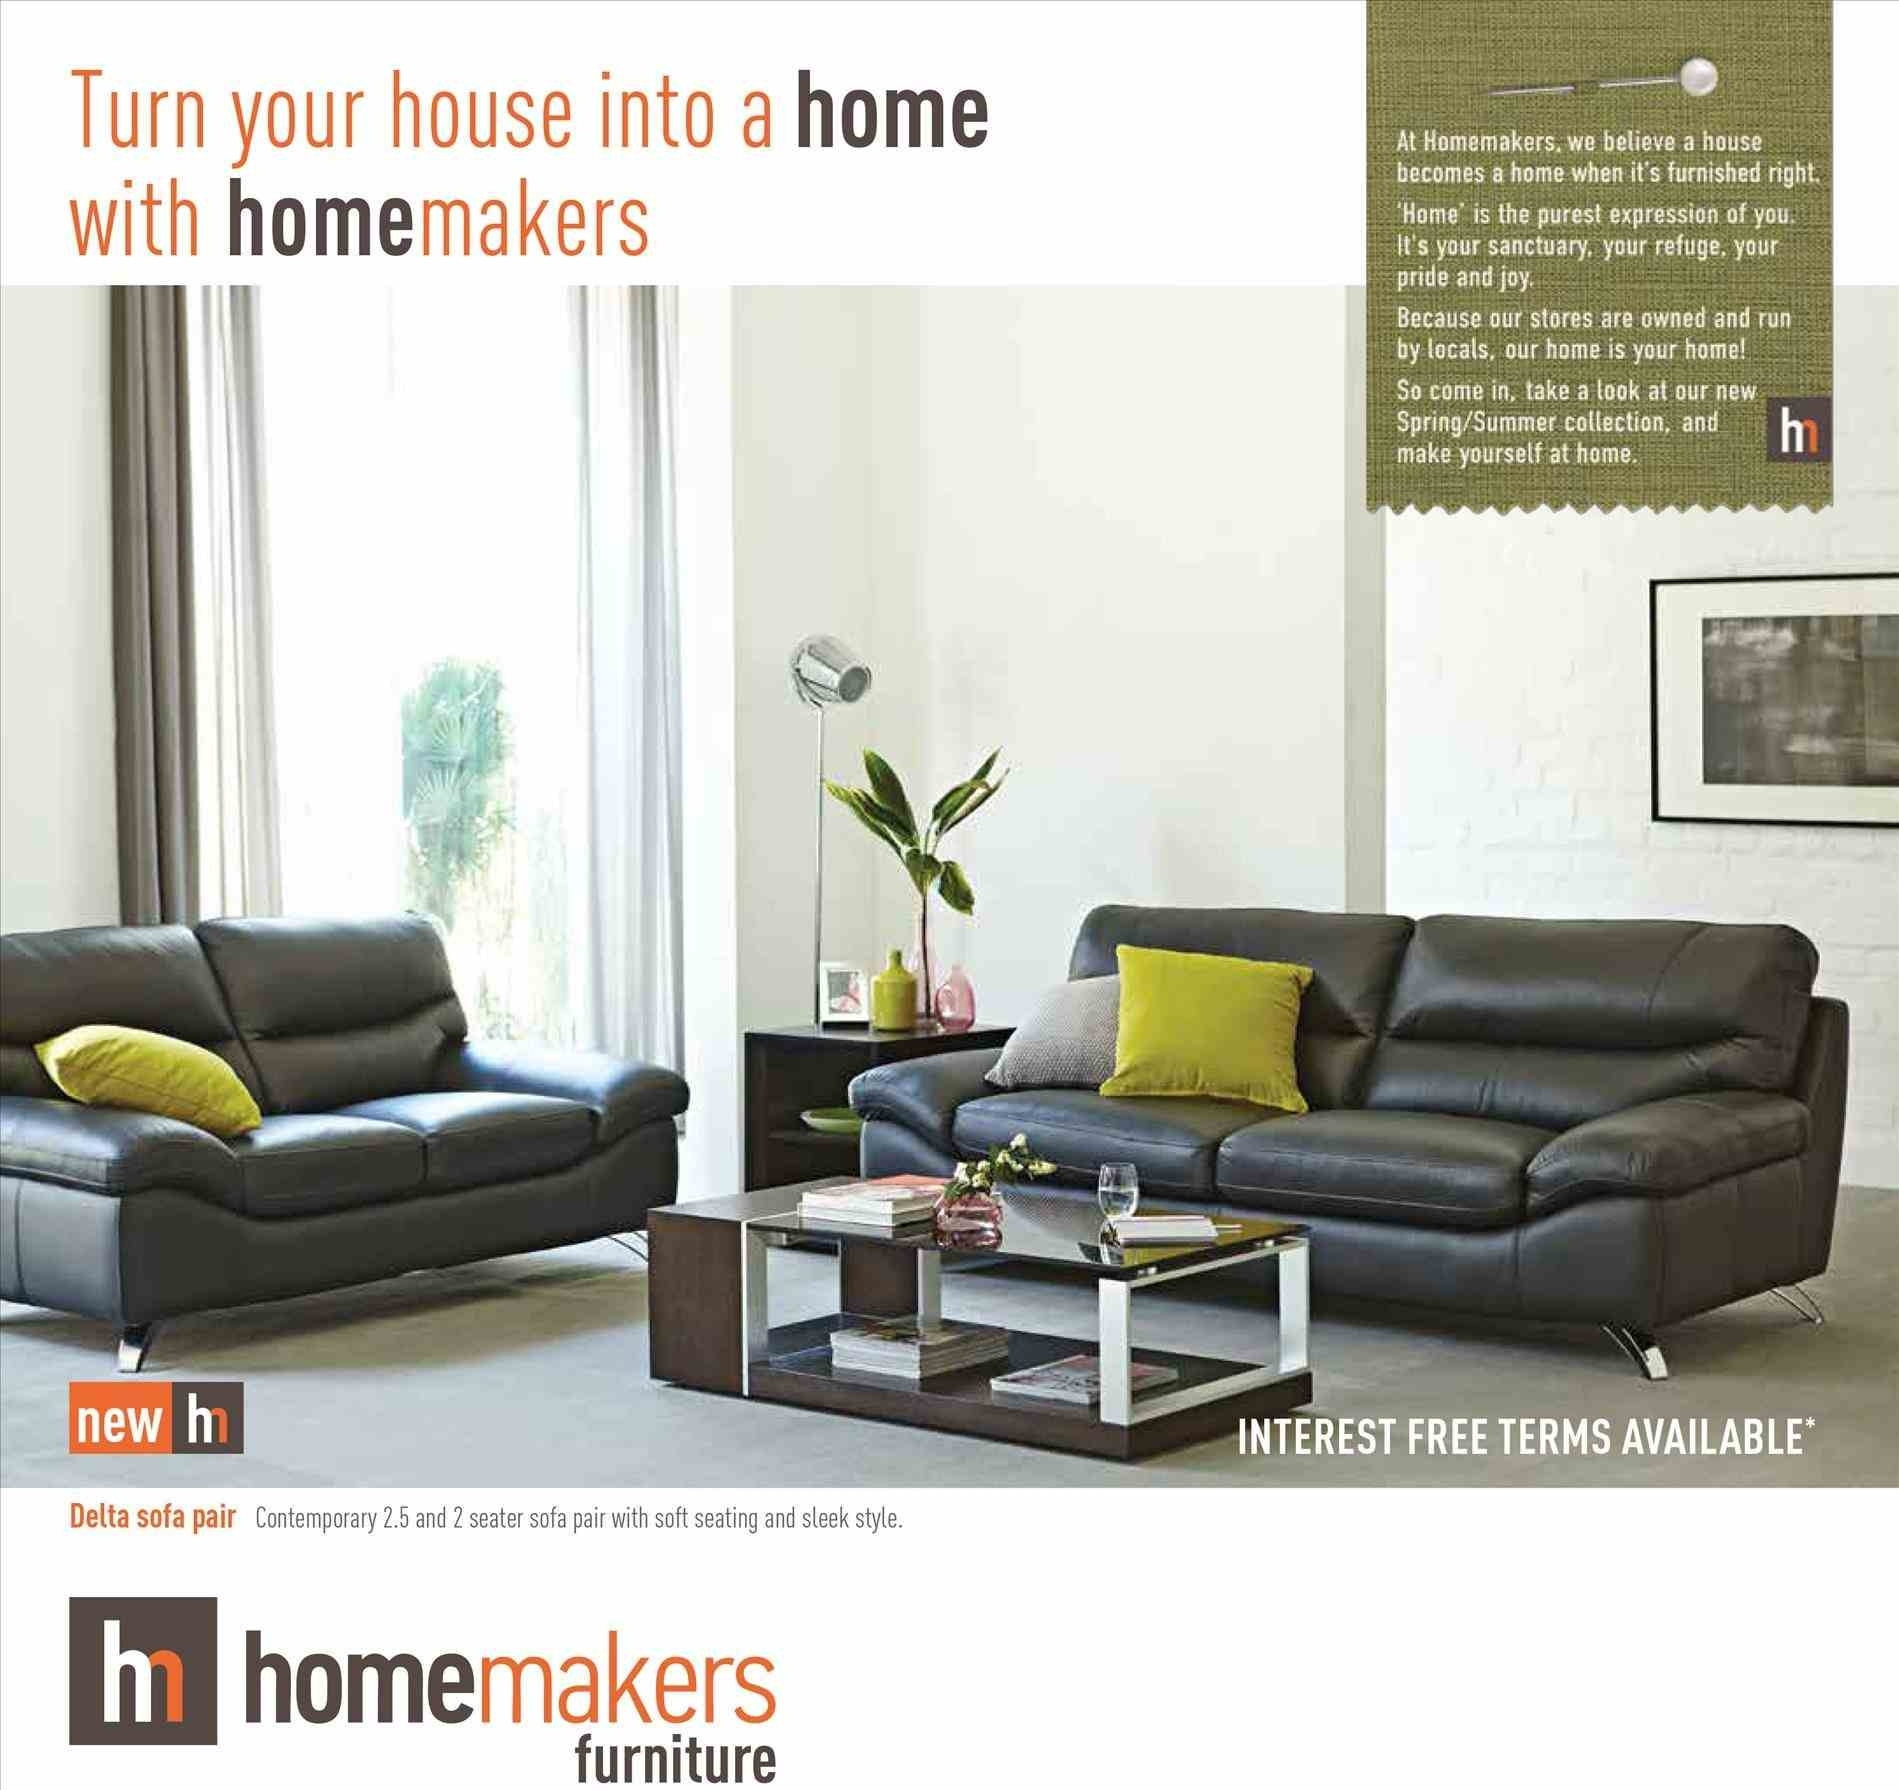 sofas by design des moines fabric sofa cleaner products 10 collection of ia sectional ideas